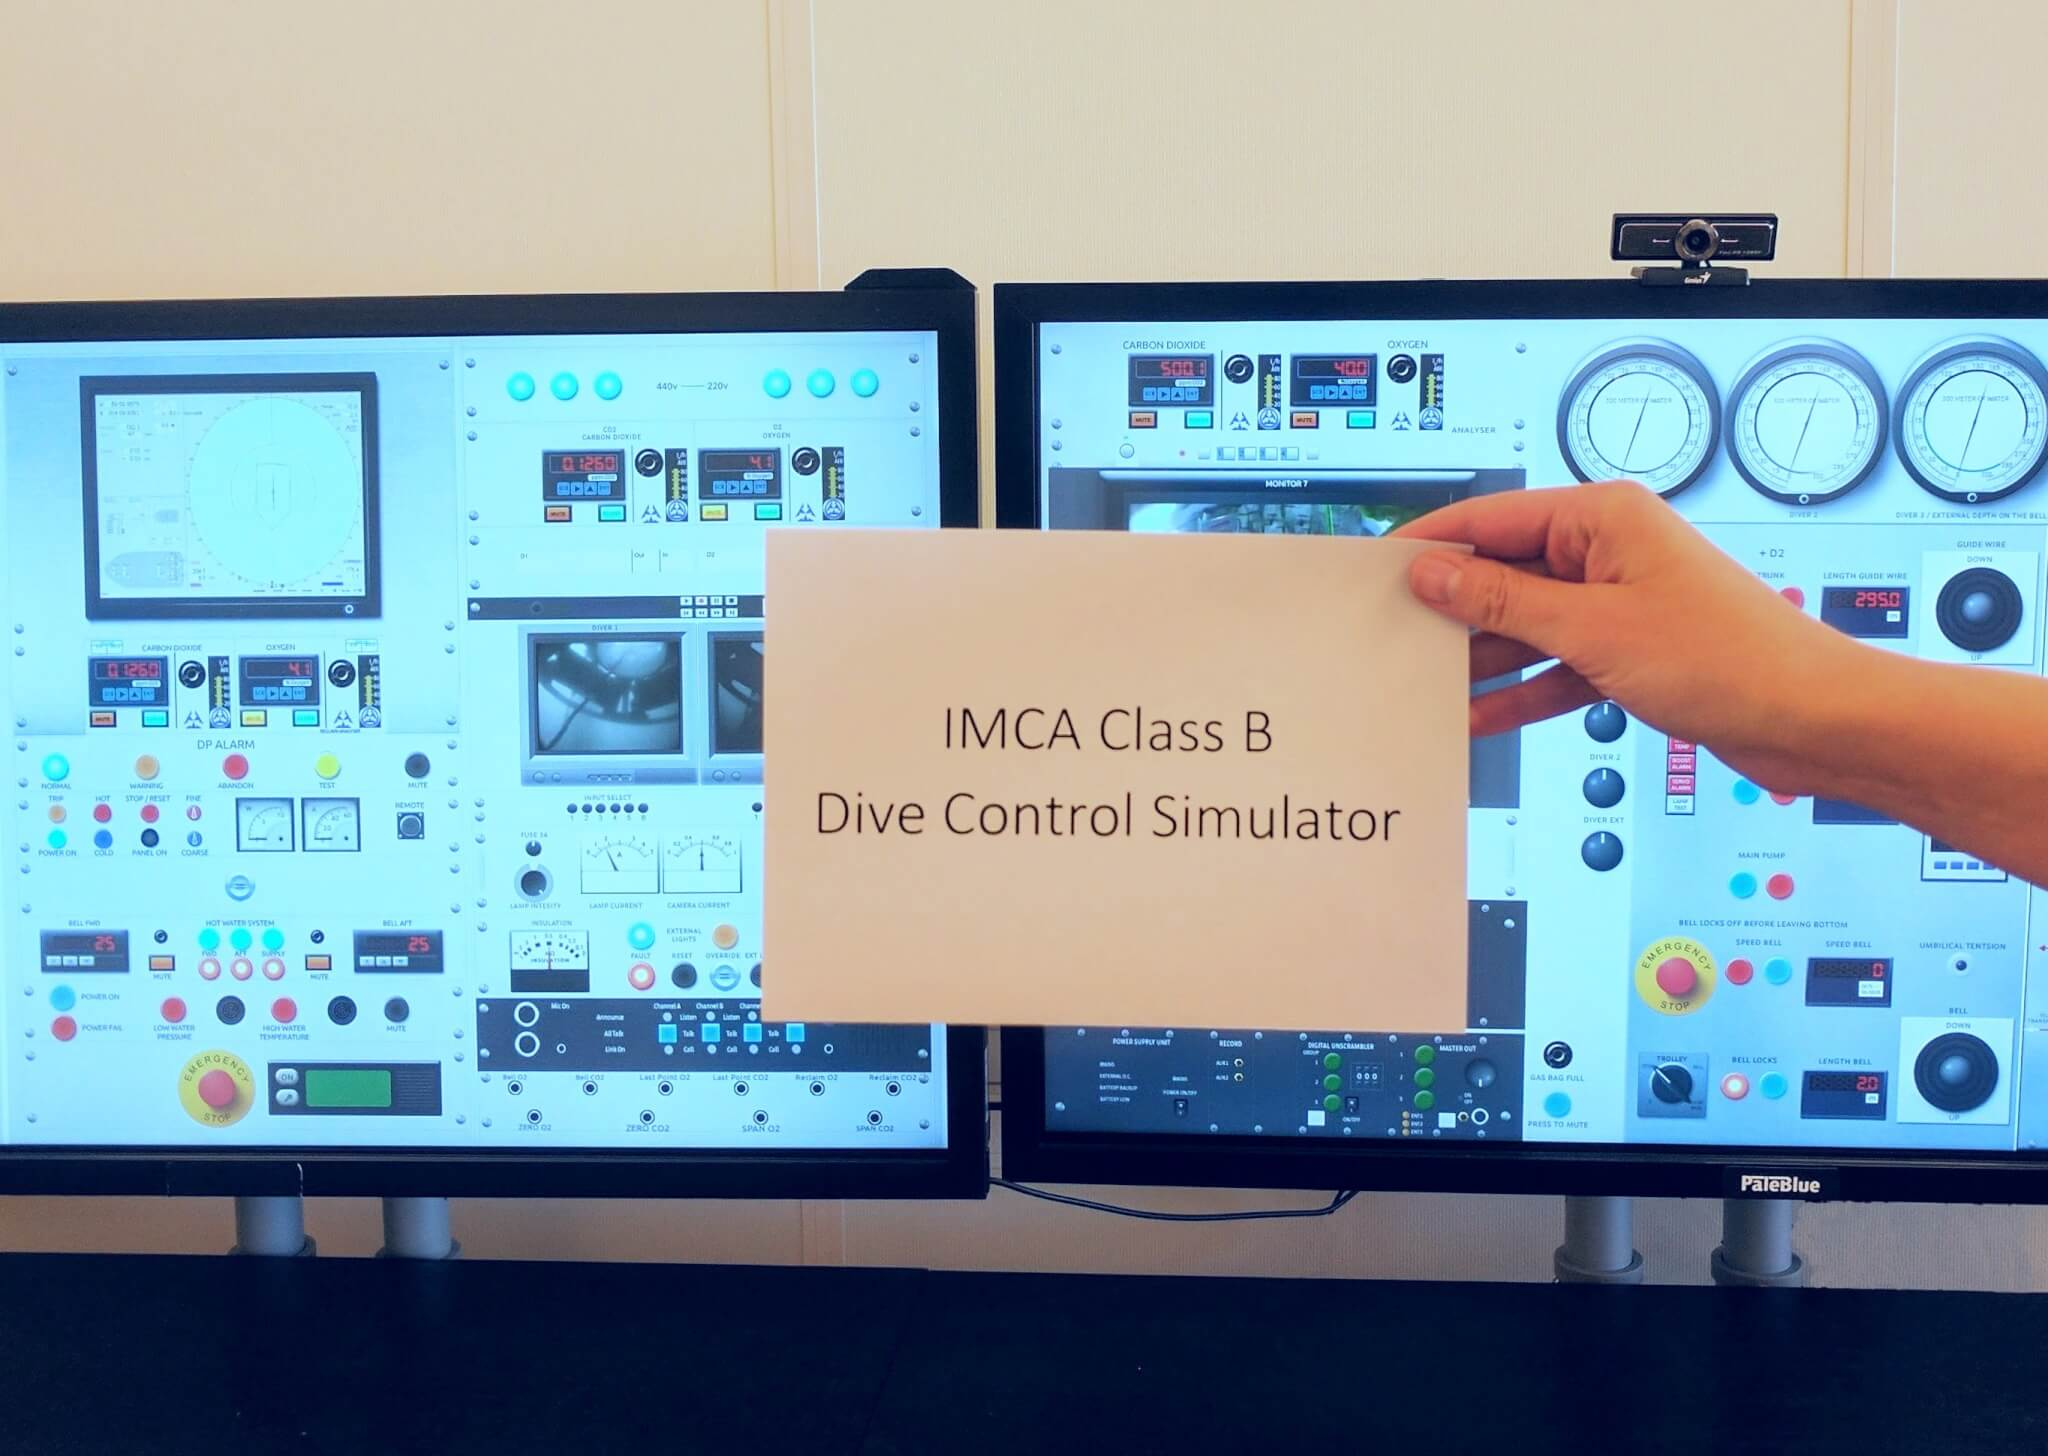 PaleBlue Simulators Recognized by IMCA